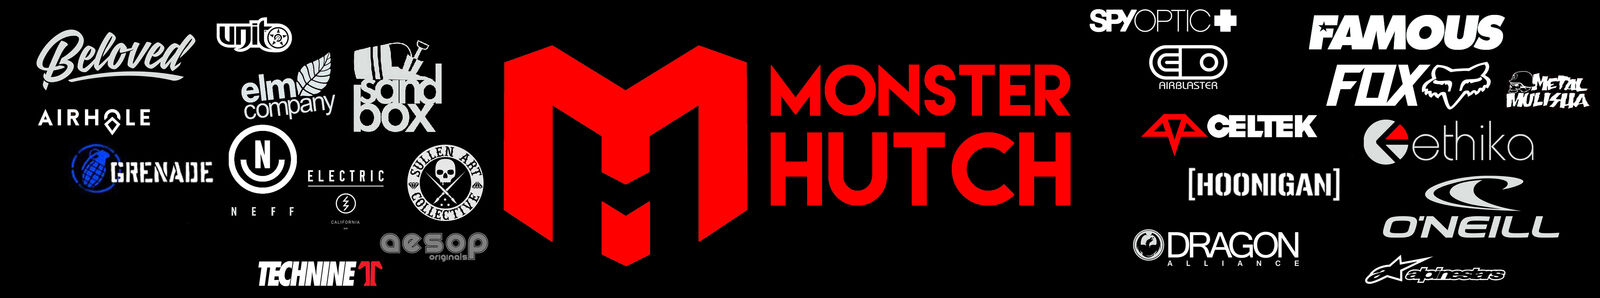 MONSTER HUTCH